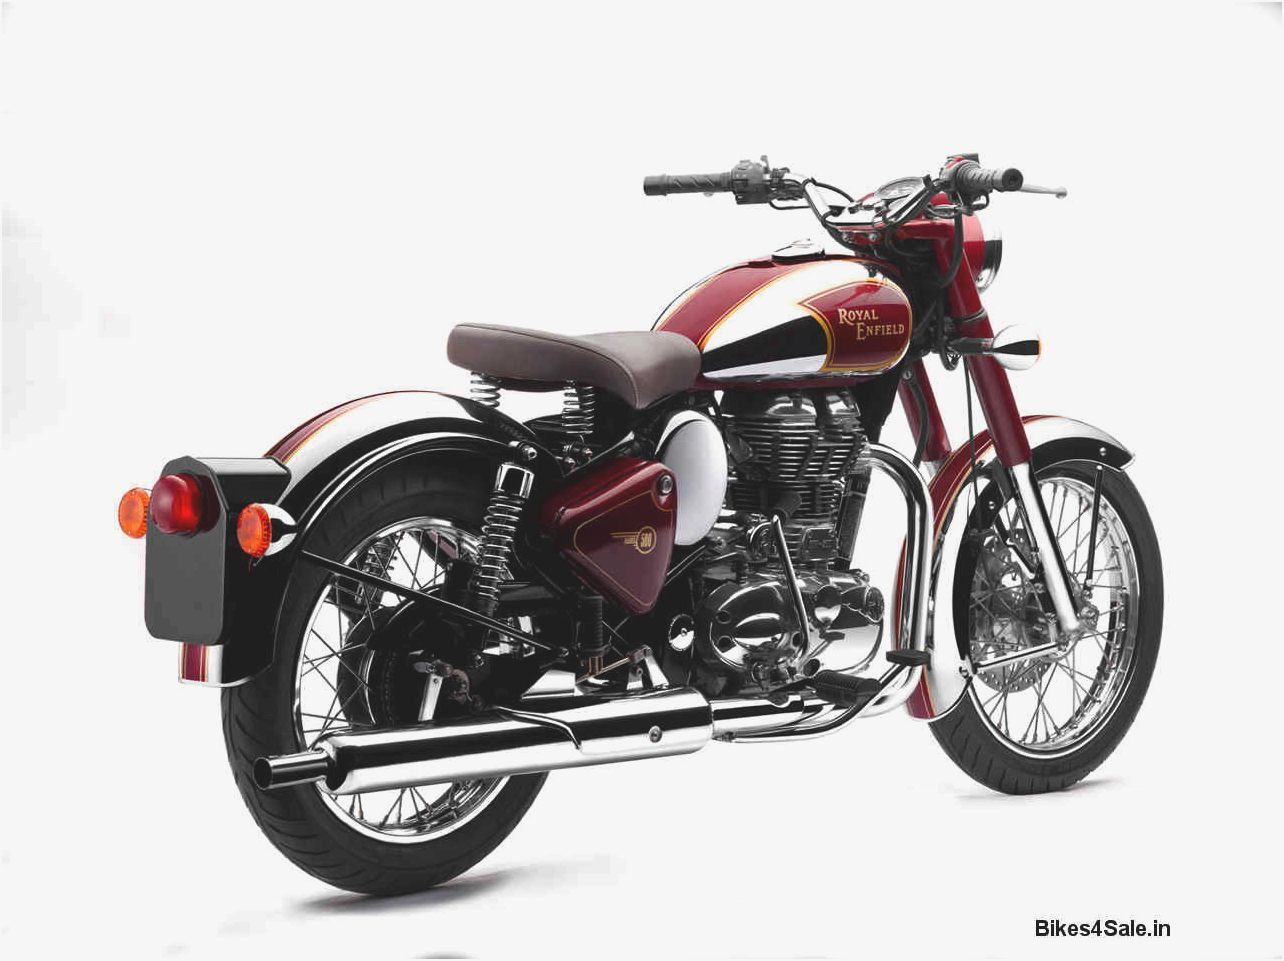 Royal Enfield Bullet 350 Classic 2005 images #123544